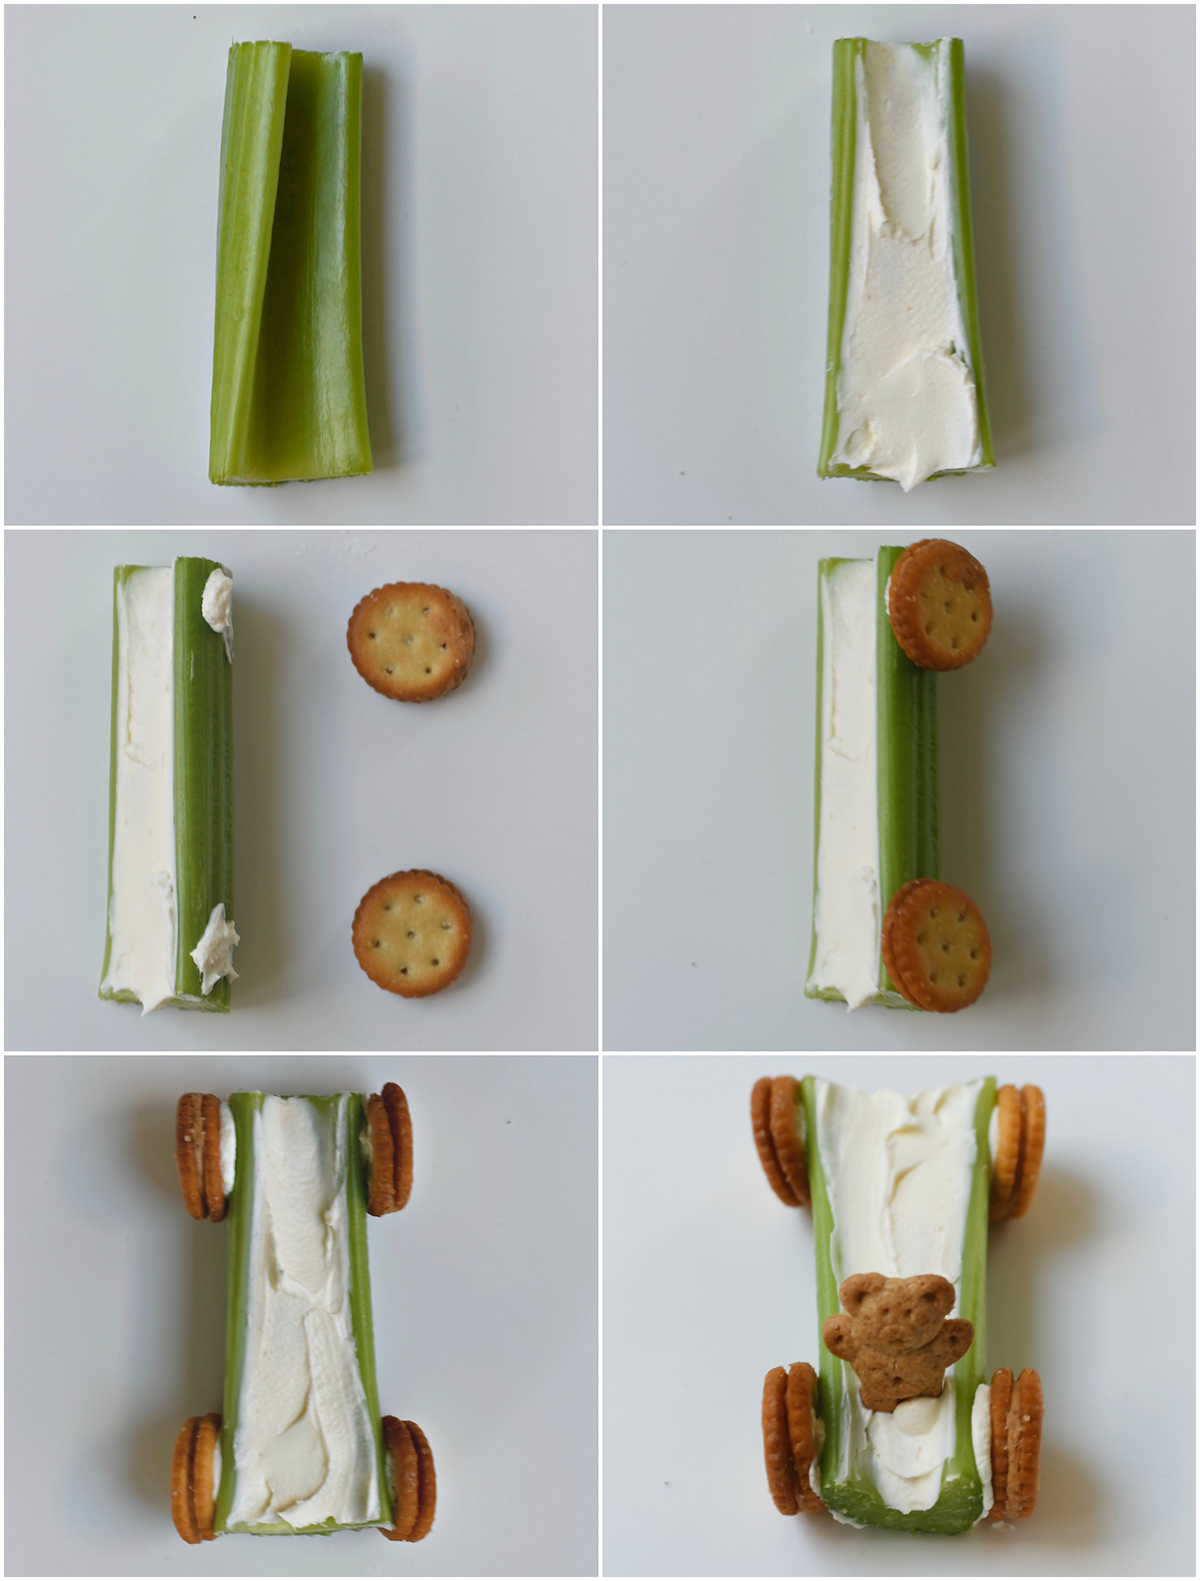 cars made of celery